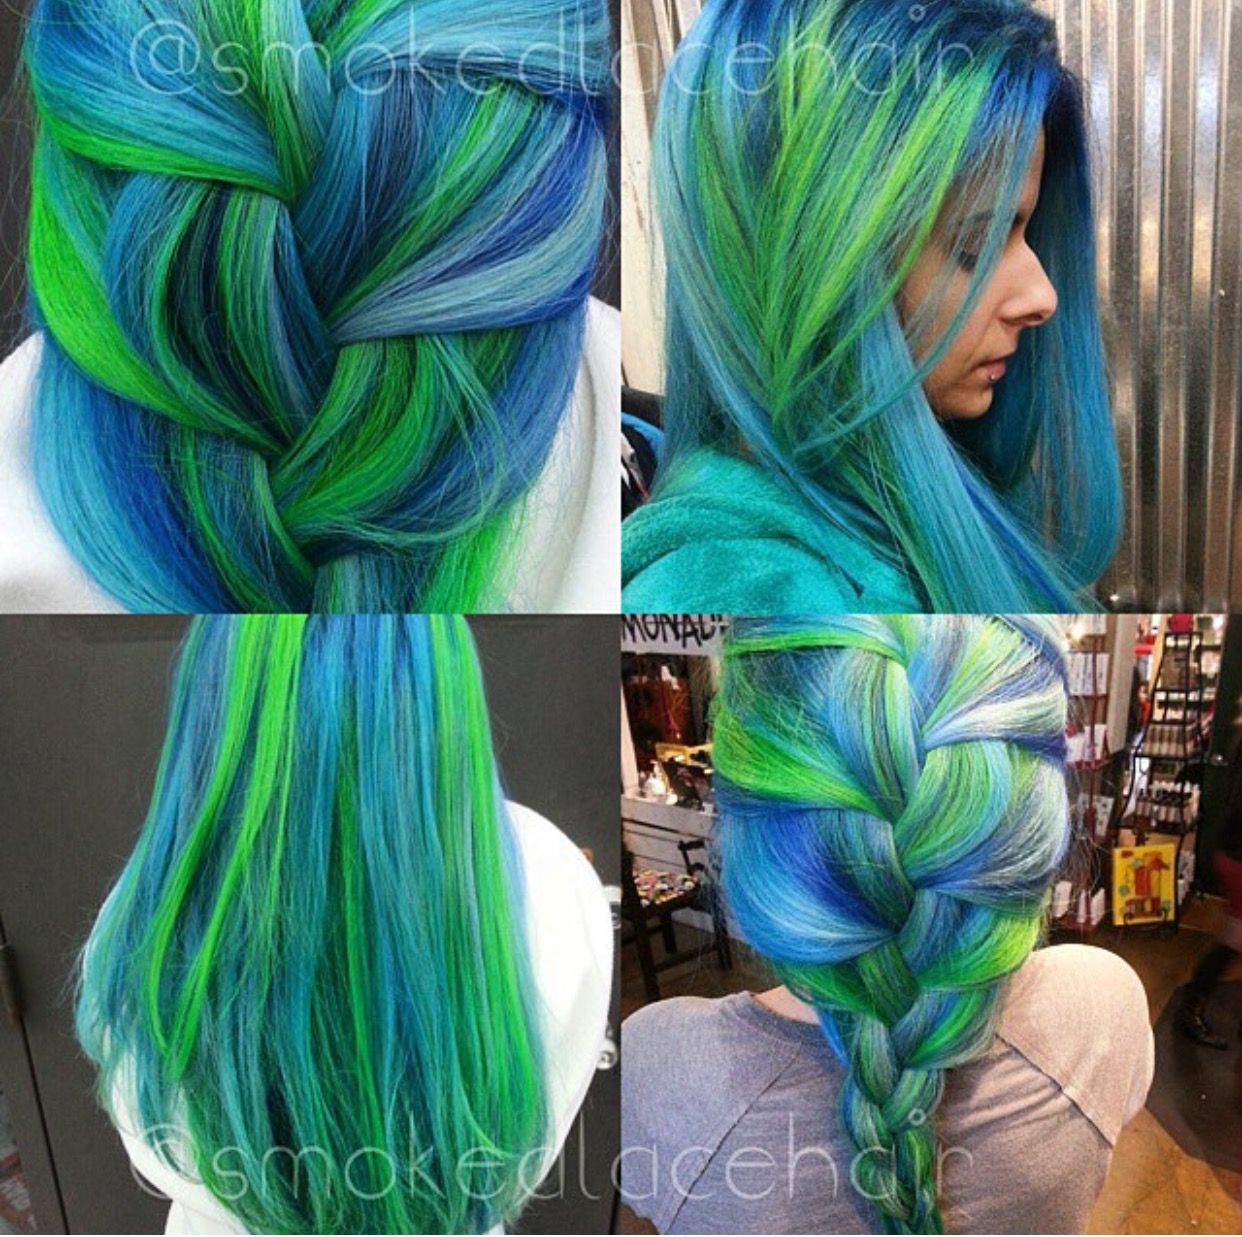 Hair color artist is pinup jordan she is a master colorist